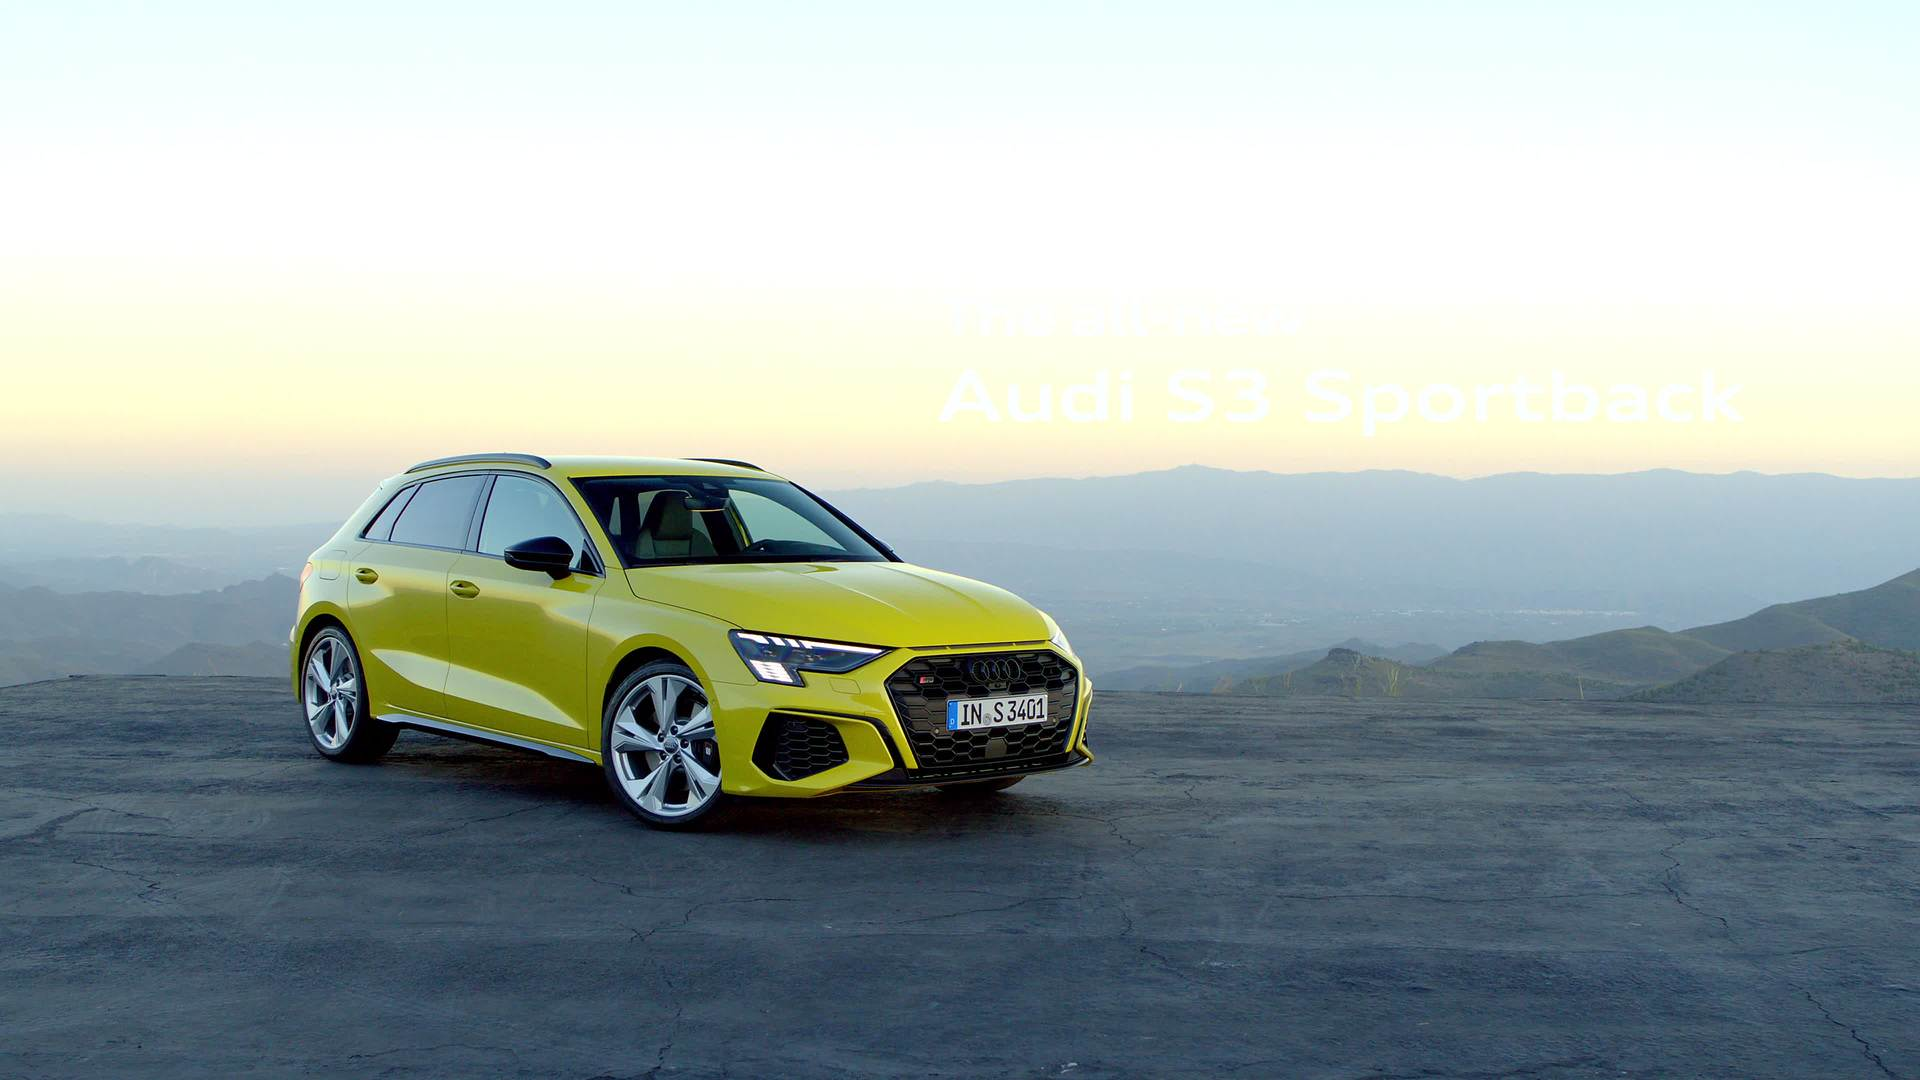 More Dynamic, More Power, More Driving Pleasure: The Audi S3 Sportback